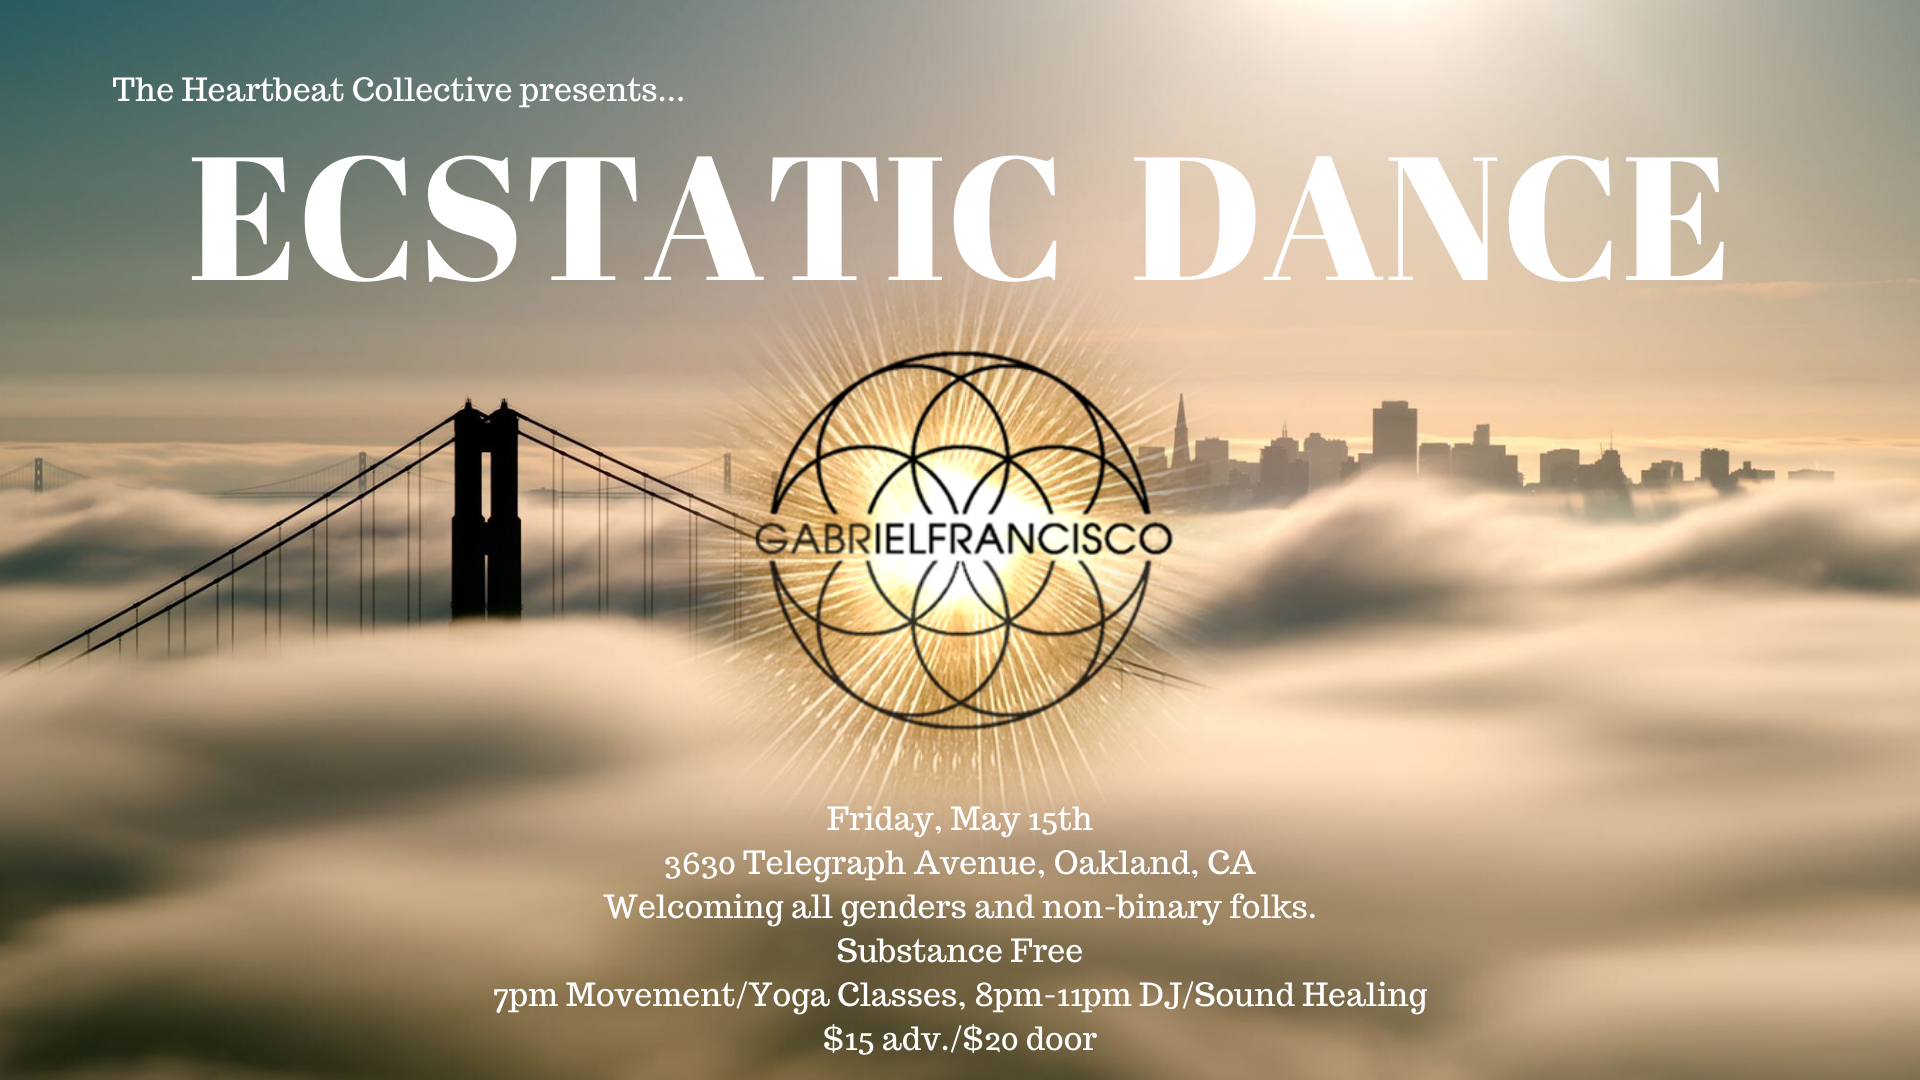 Ecstatic Dance at The Heartbeat Collective with Gabriel Francisco